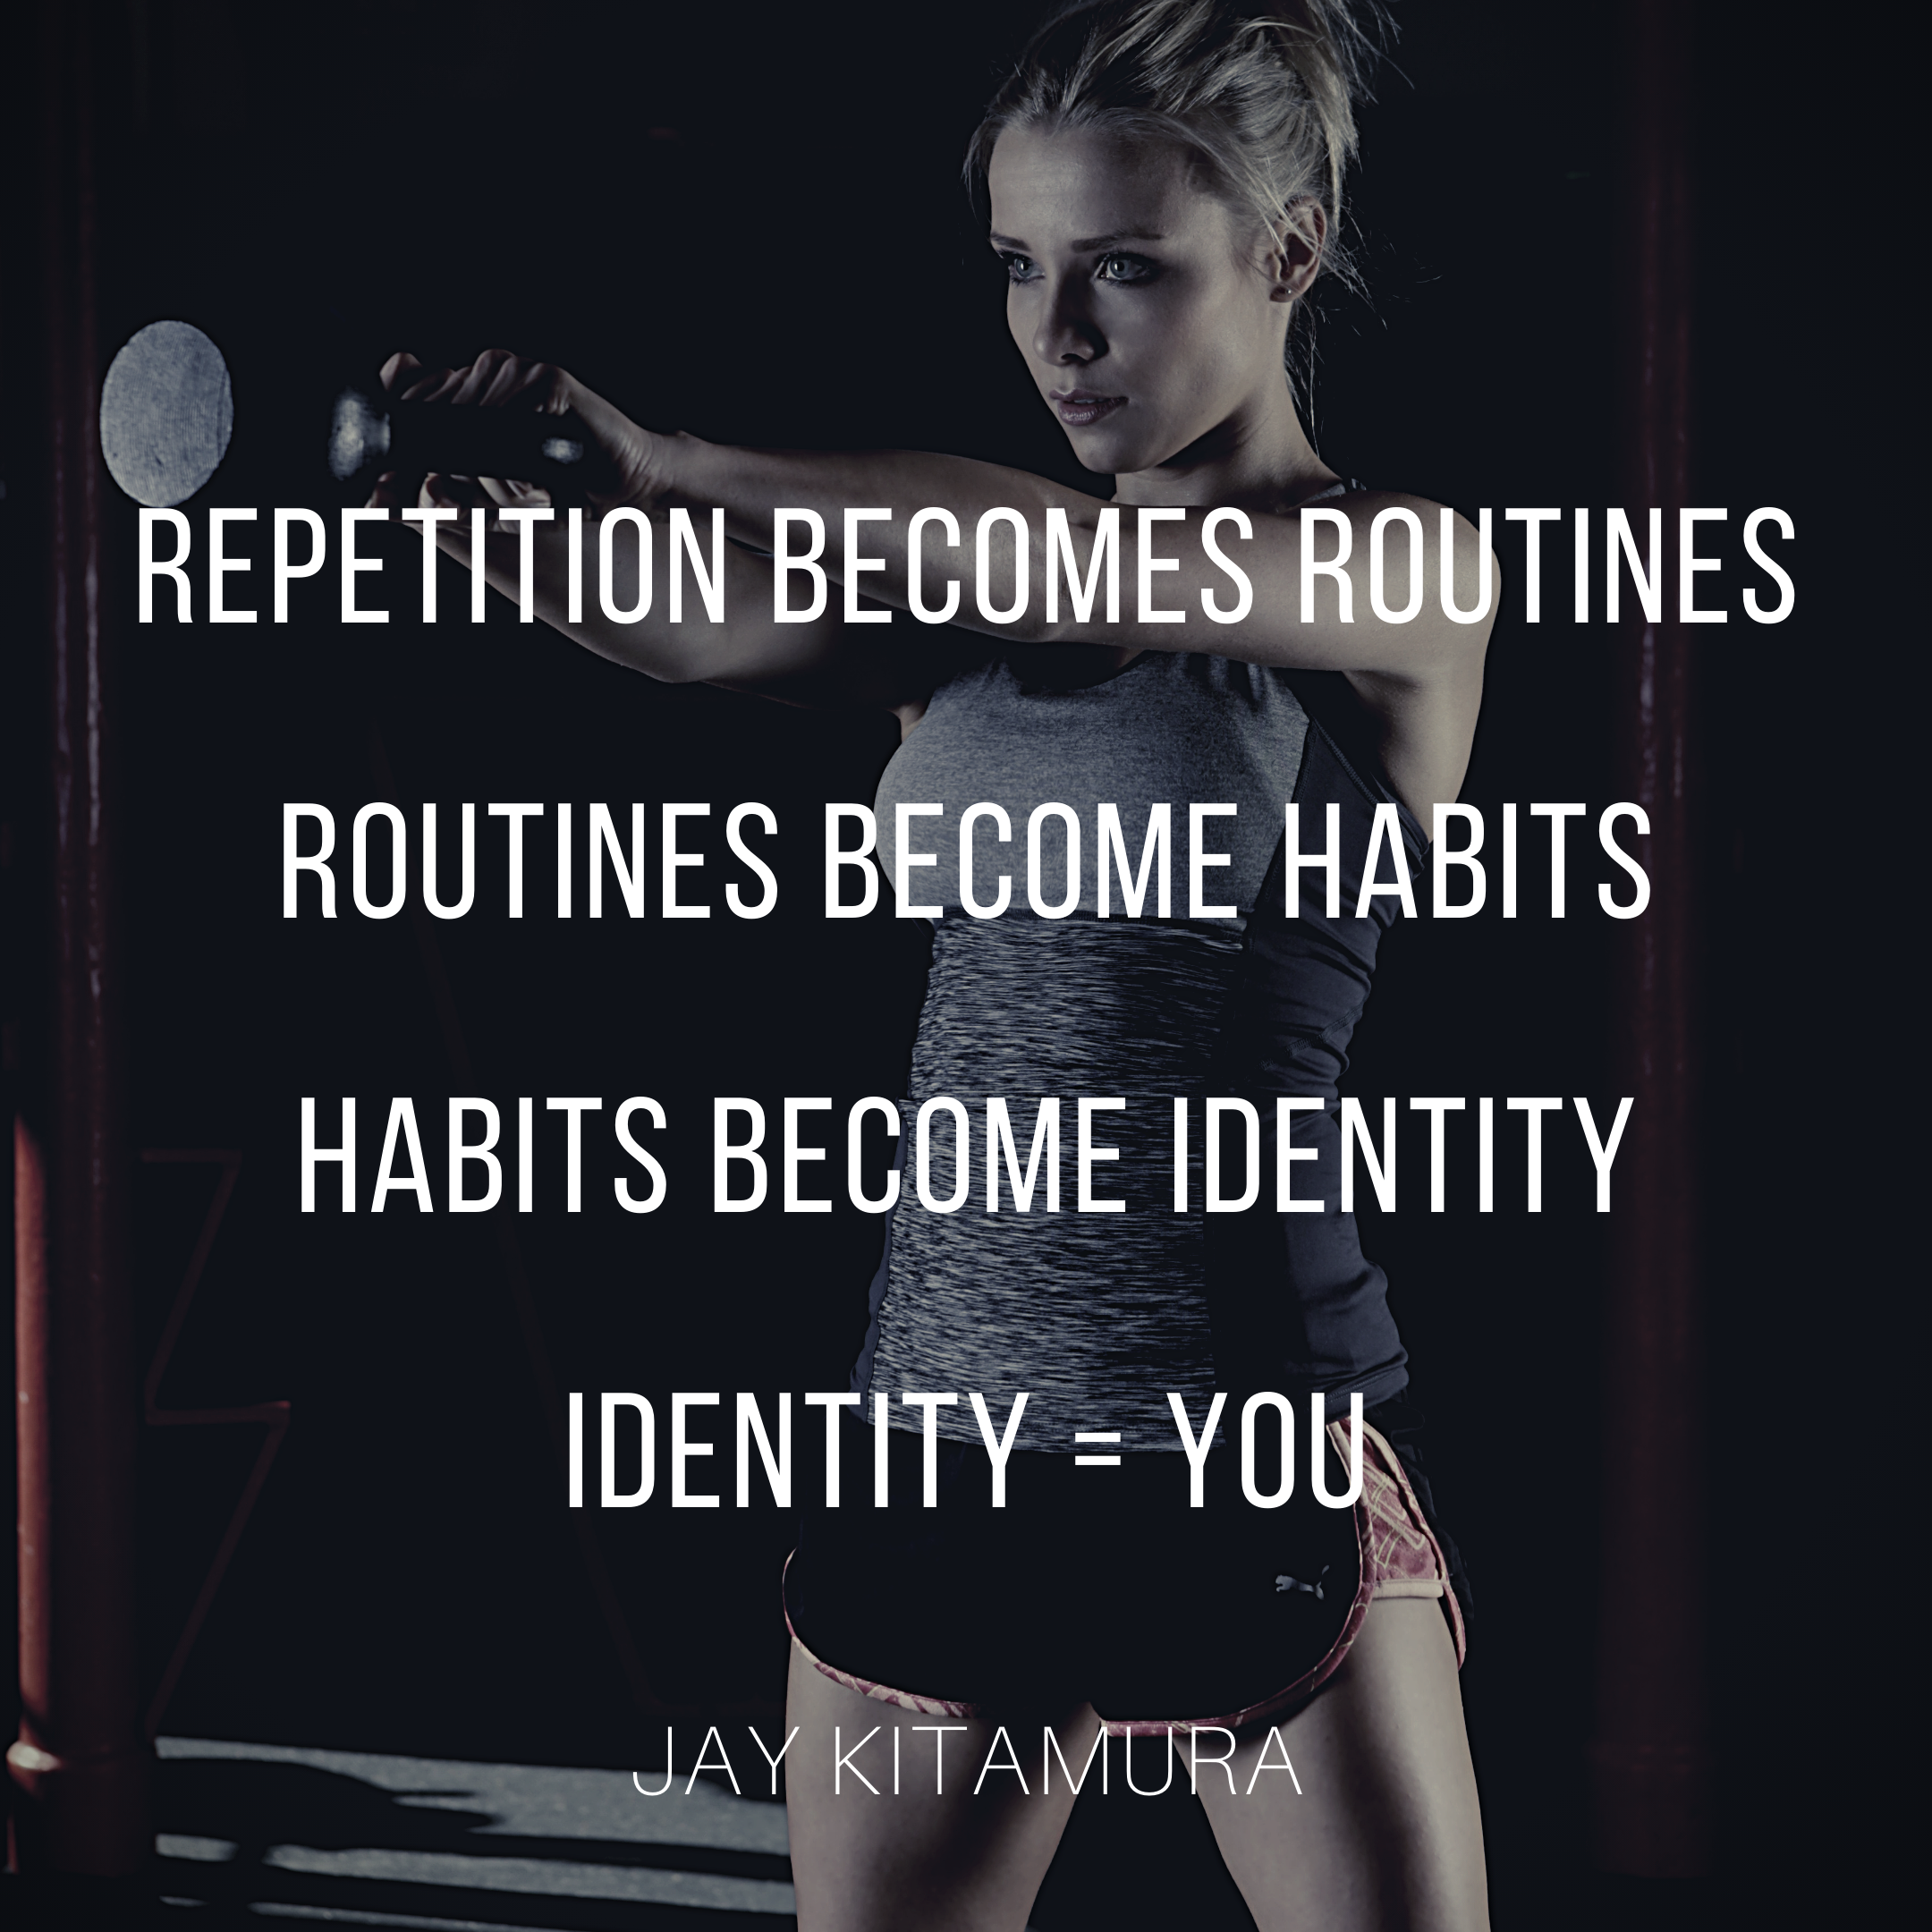 [Image] Repetition is the key to lasting change